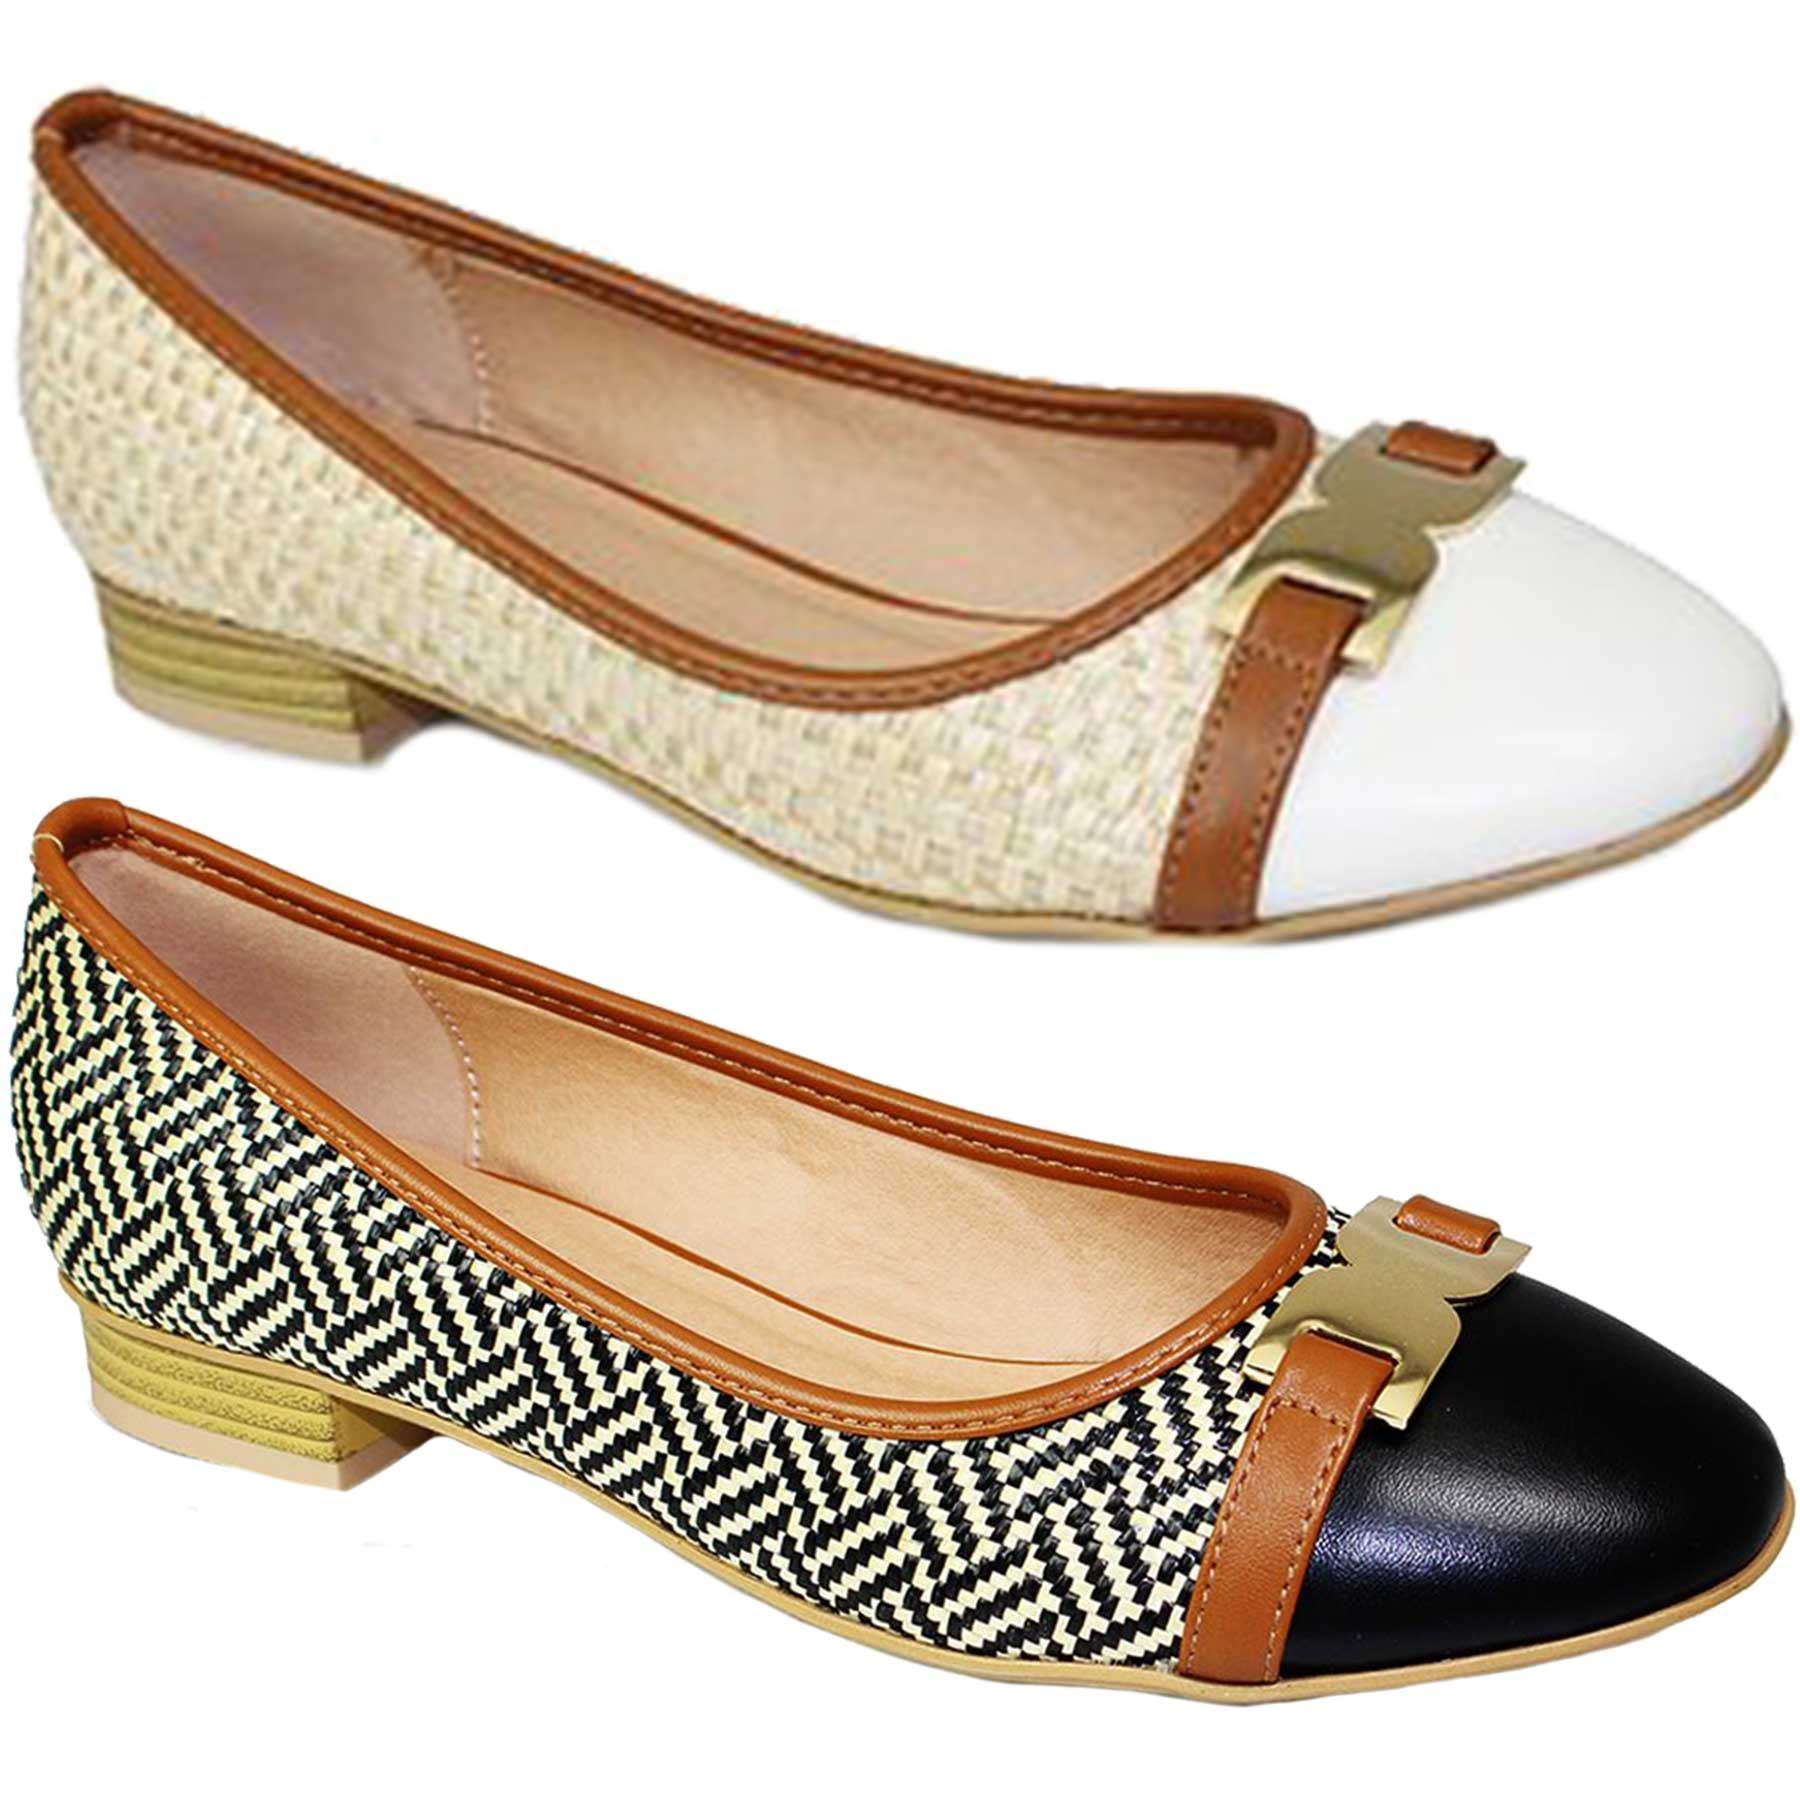 ada788b1765 Details about ladies interweave low heel slip on gold buckle two tone pumps  flats shoes jpg